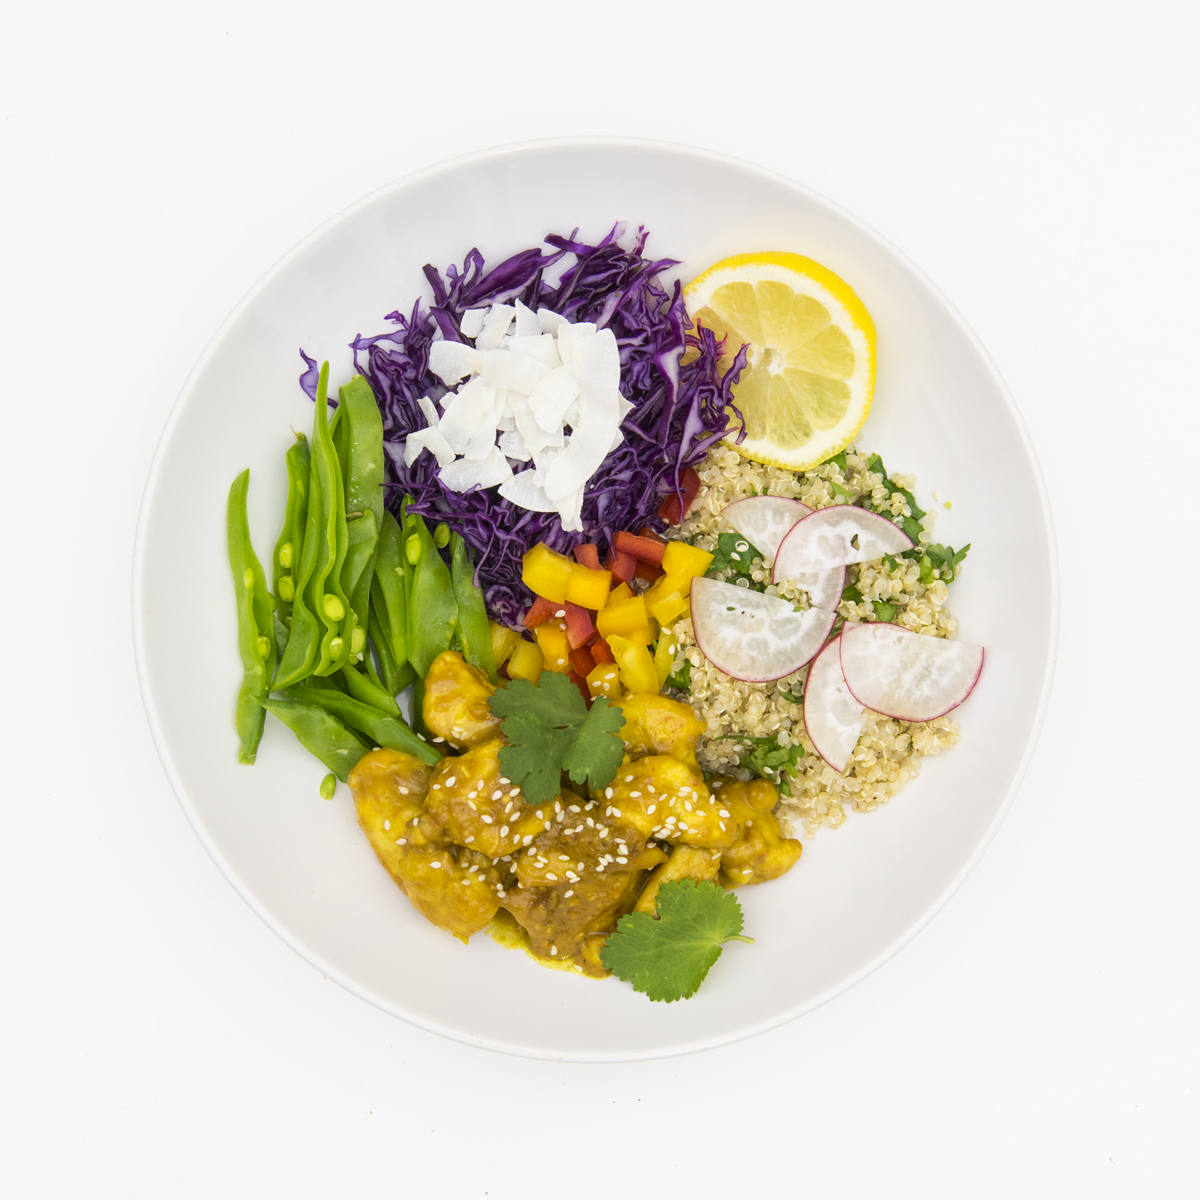 Bliss full bowls the bikini cookbook as a naturopath i am always looking for ways to improve my health through diet lifestyle as they say a healthy outside starts with a healthy inside forumfinder Image collections